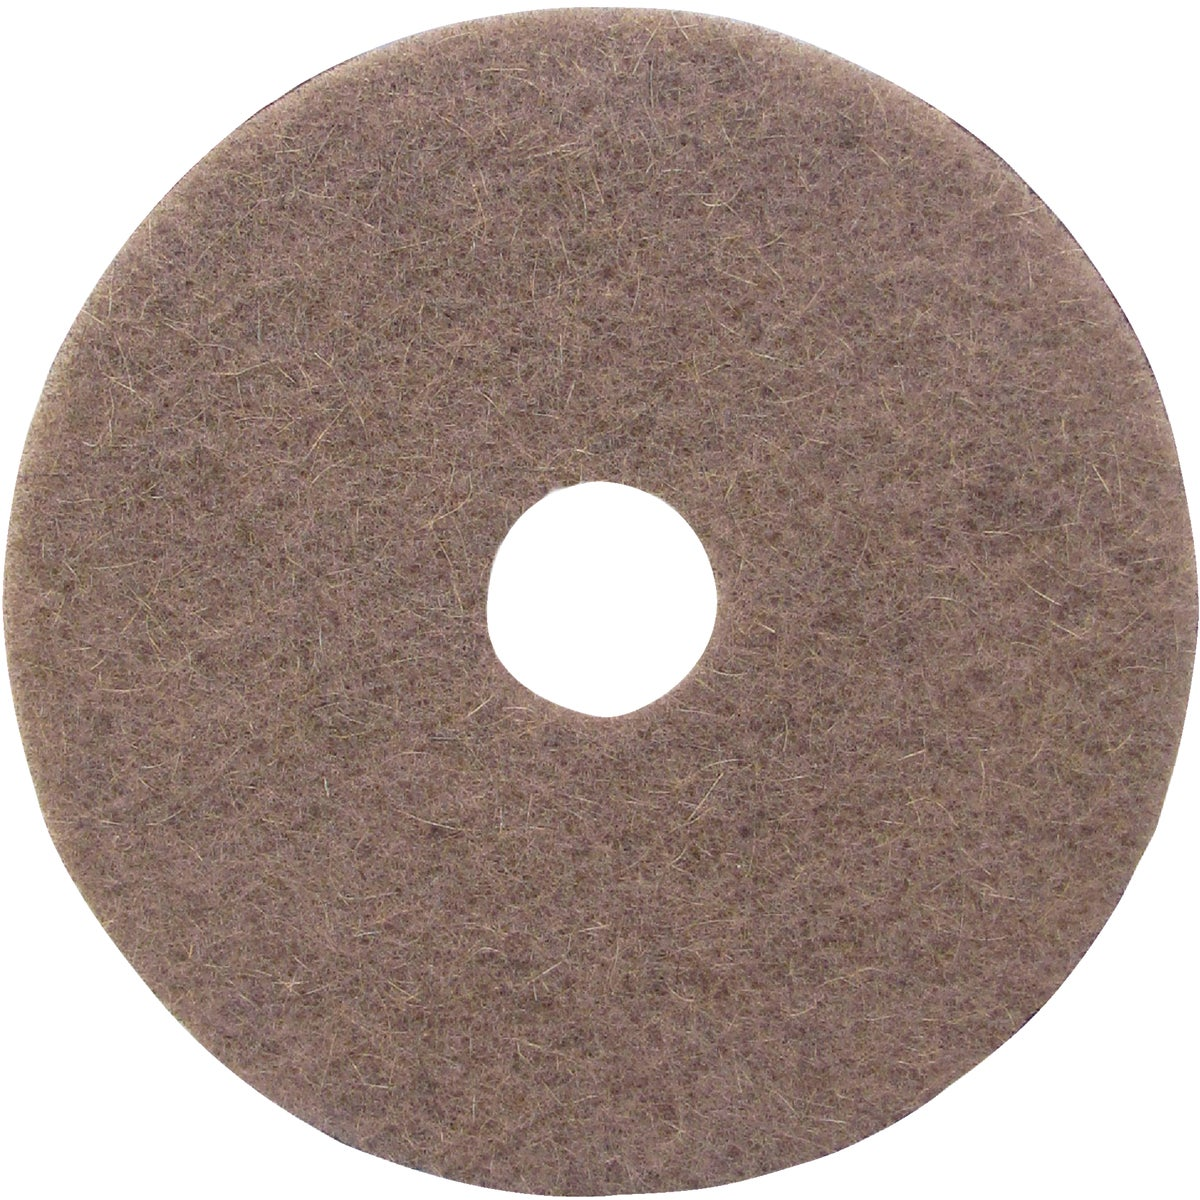 "17"" NATURAL BUFFING PAD - TKL17N by Lundmark Wax Co"